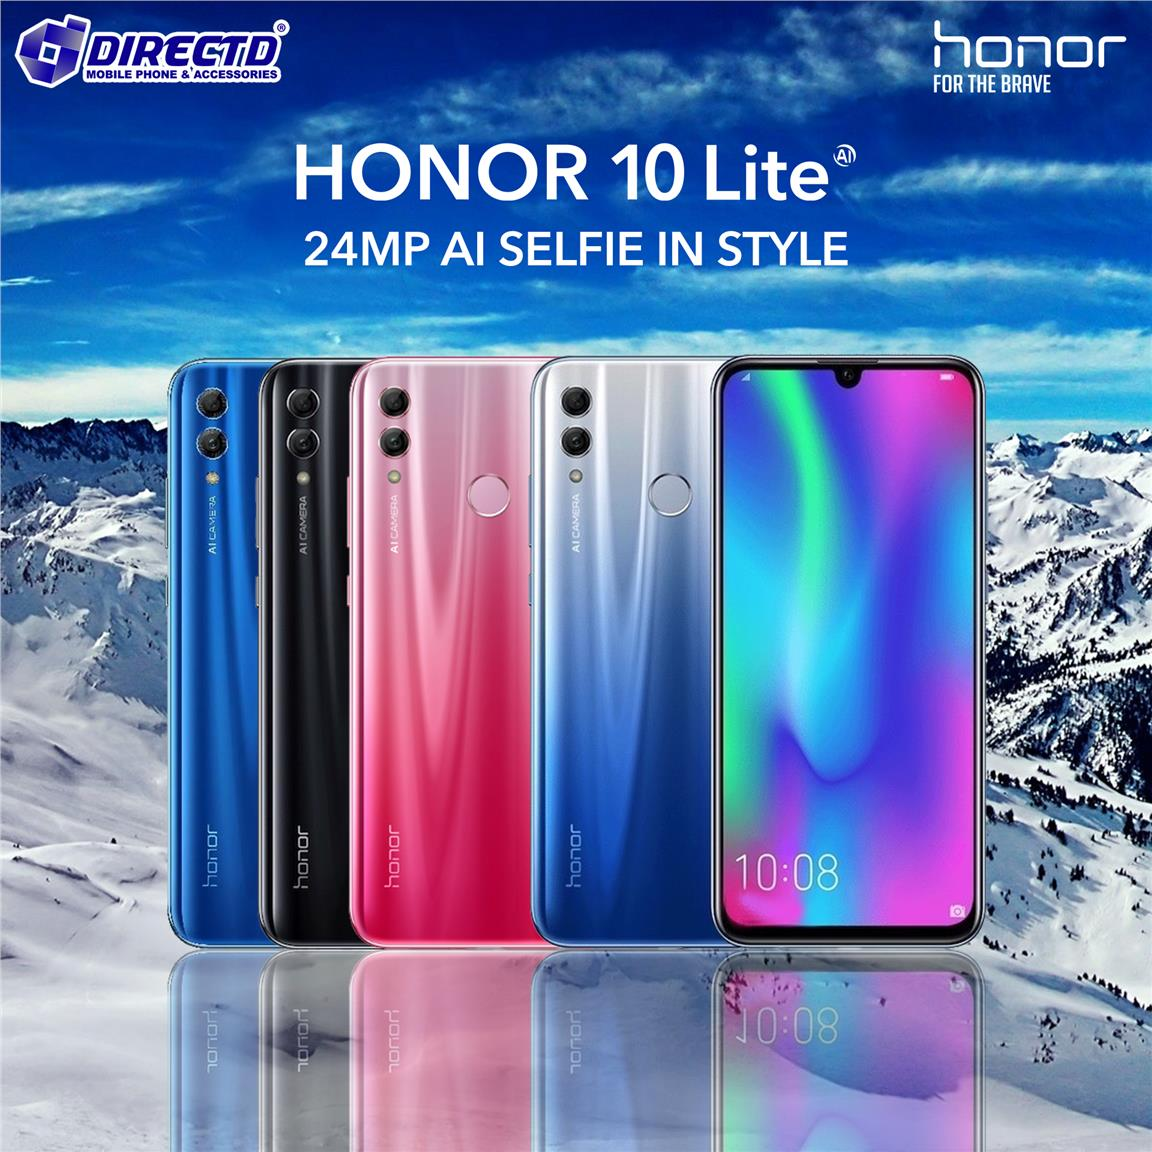 HONOR 10 lite - ORIGINAL set by HONOR Malaysia (LATEST MODEL)